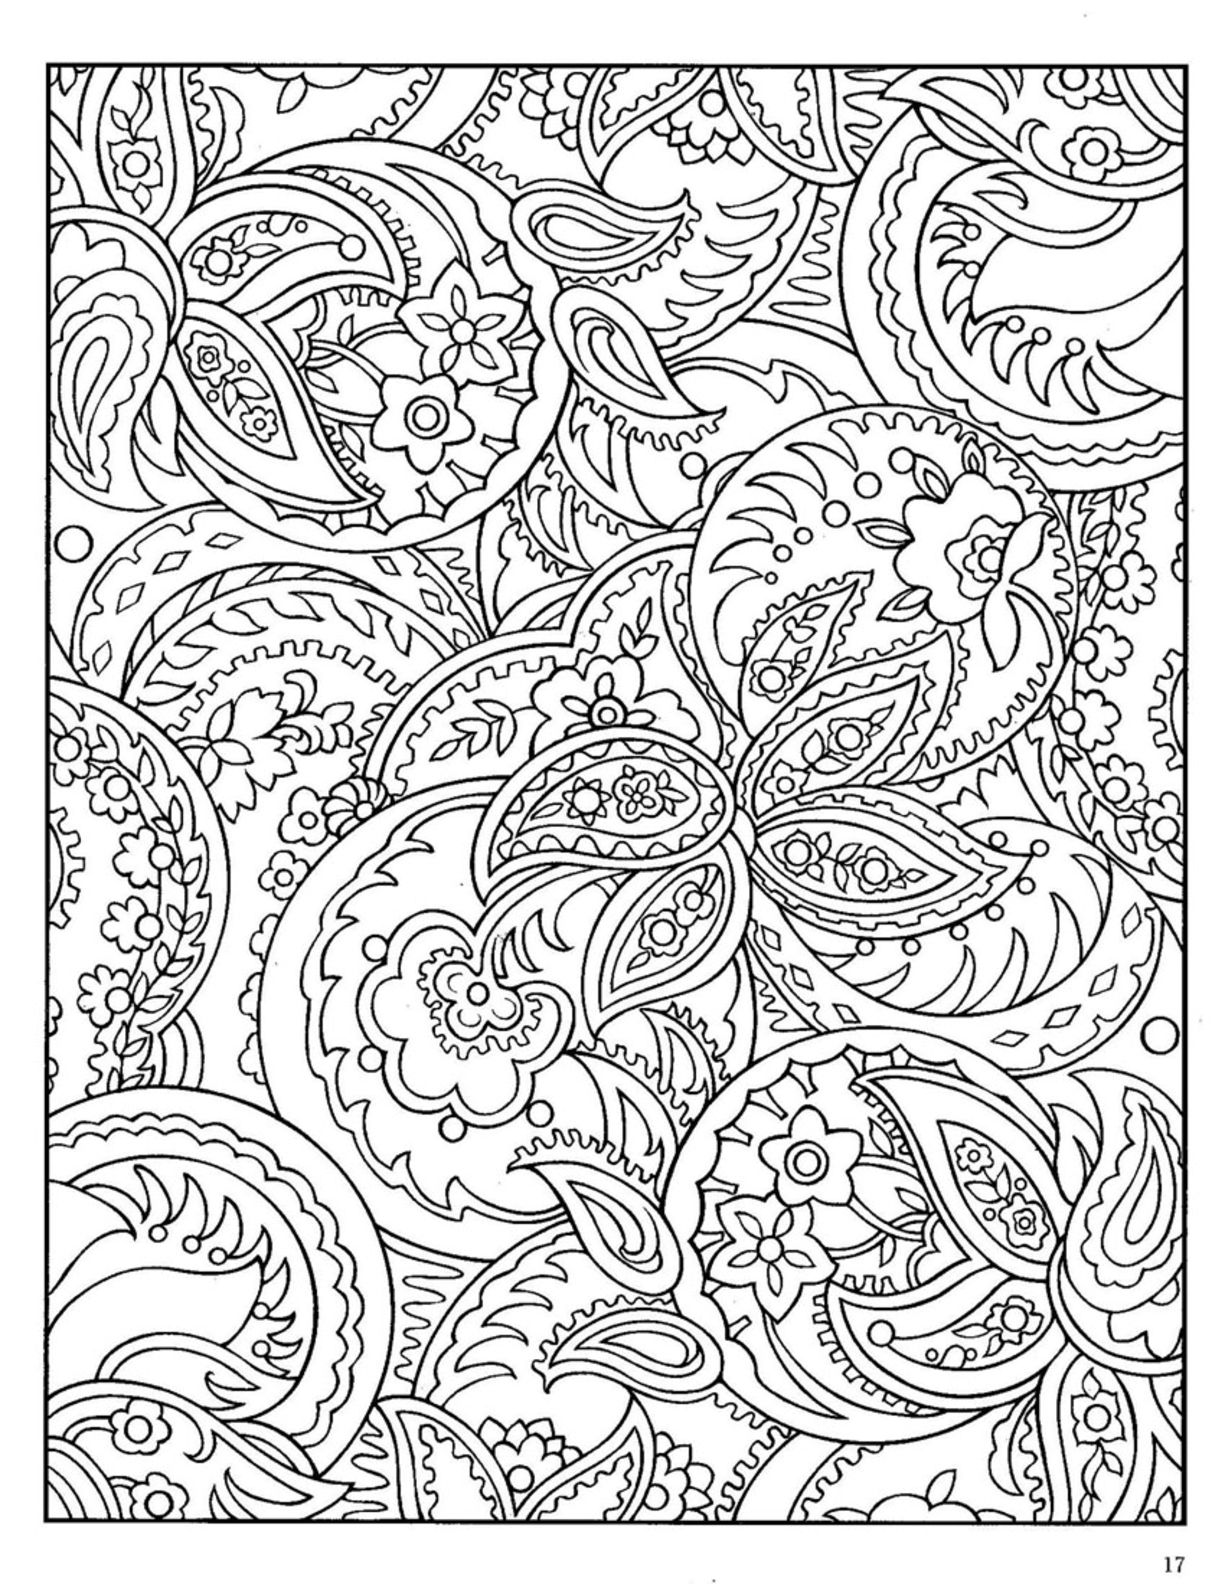 Free coloring pages for adults and teens. Description from